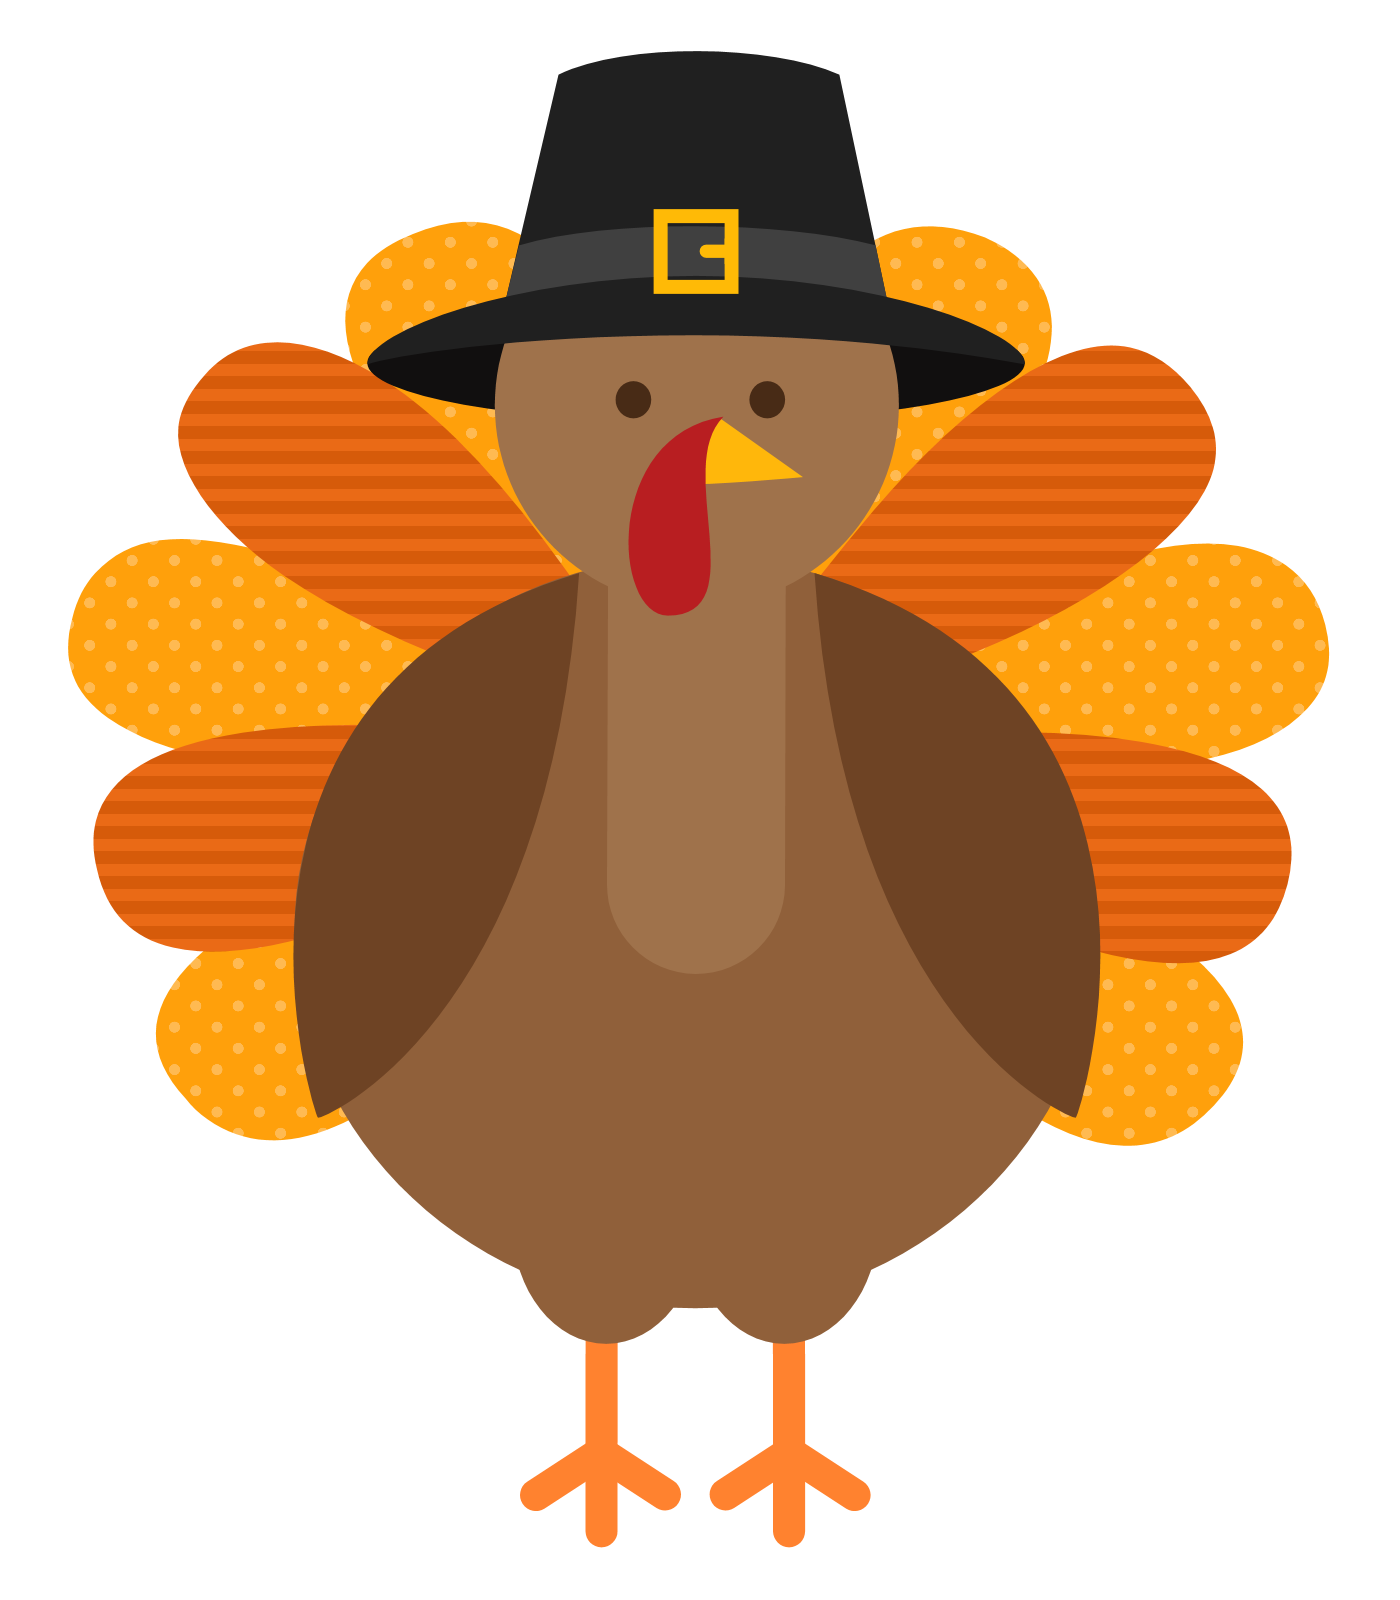 Modern thanksgiving clipart picture freeuse download Character day in prek clipart - ClipartFox picture freeuse download